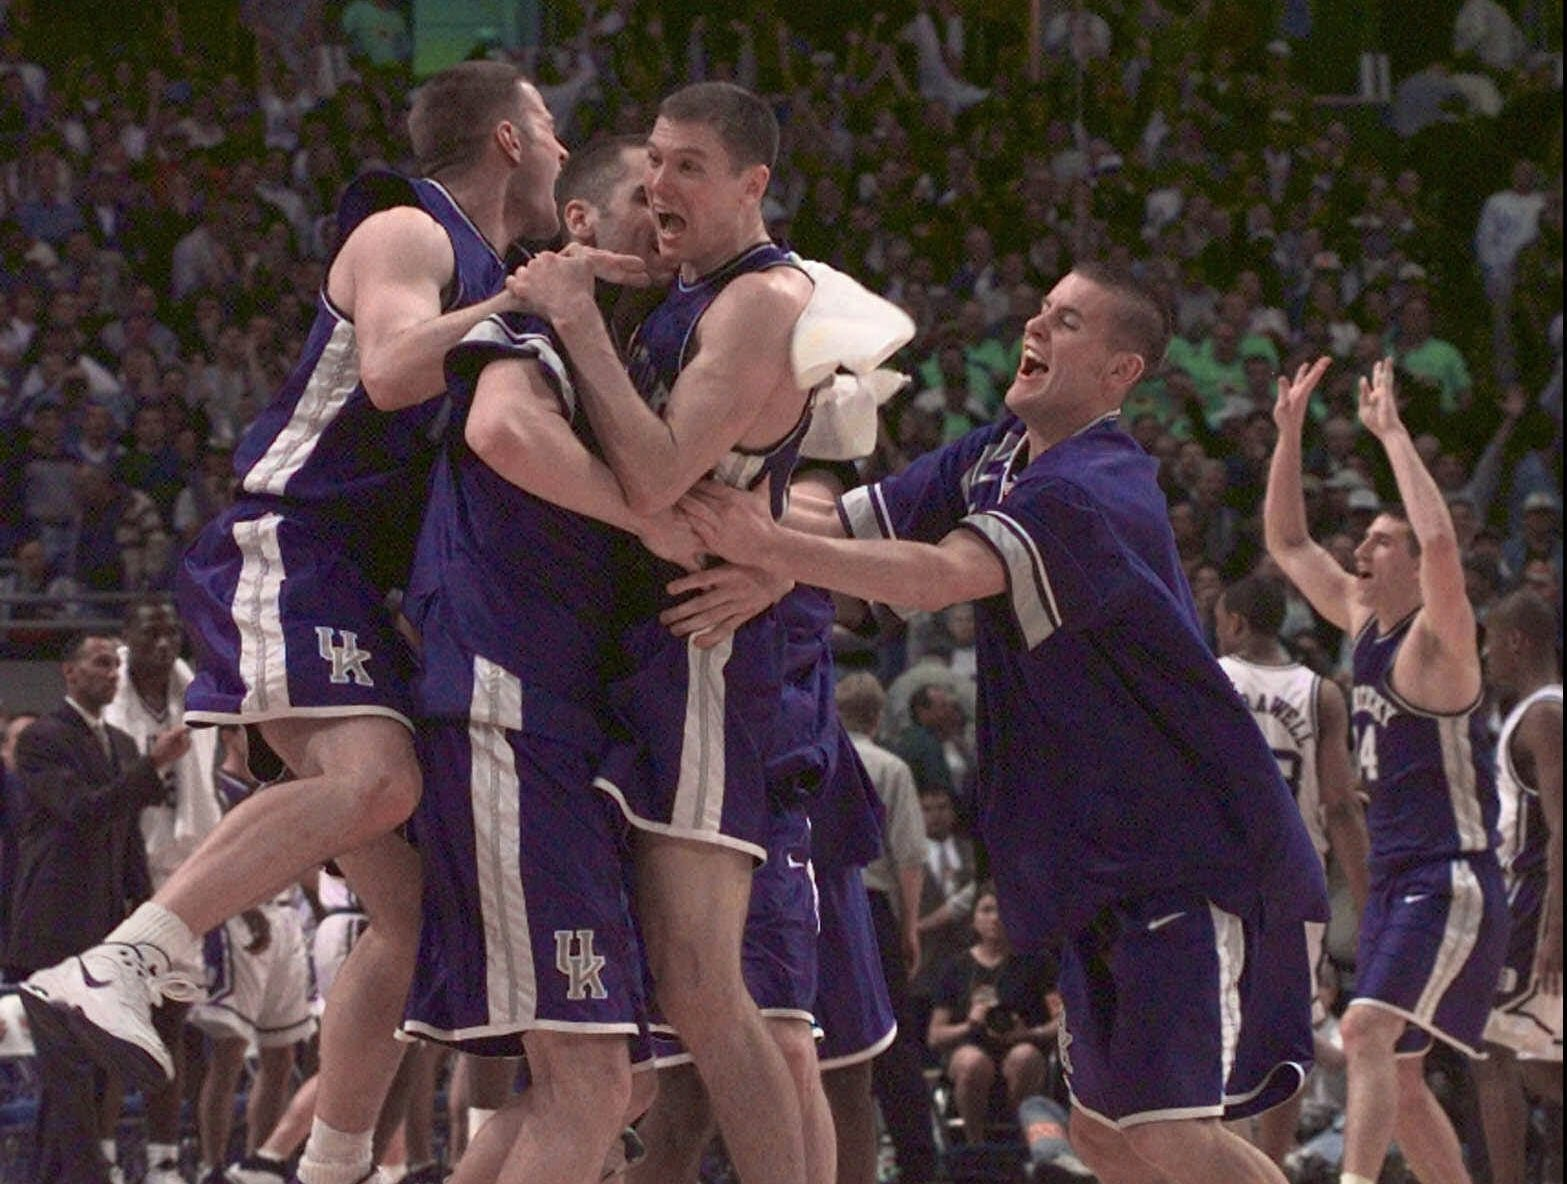 University of Kentucky players celebrate after they won the NCAA Southern Regional Finals in St. Petersburg, Fla., with a score of 86-84 Sunday, March 22, 1998.